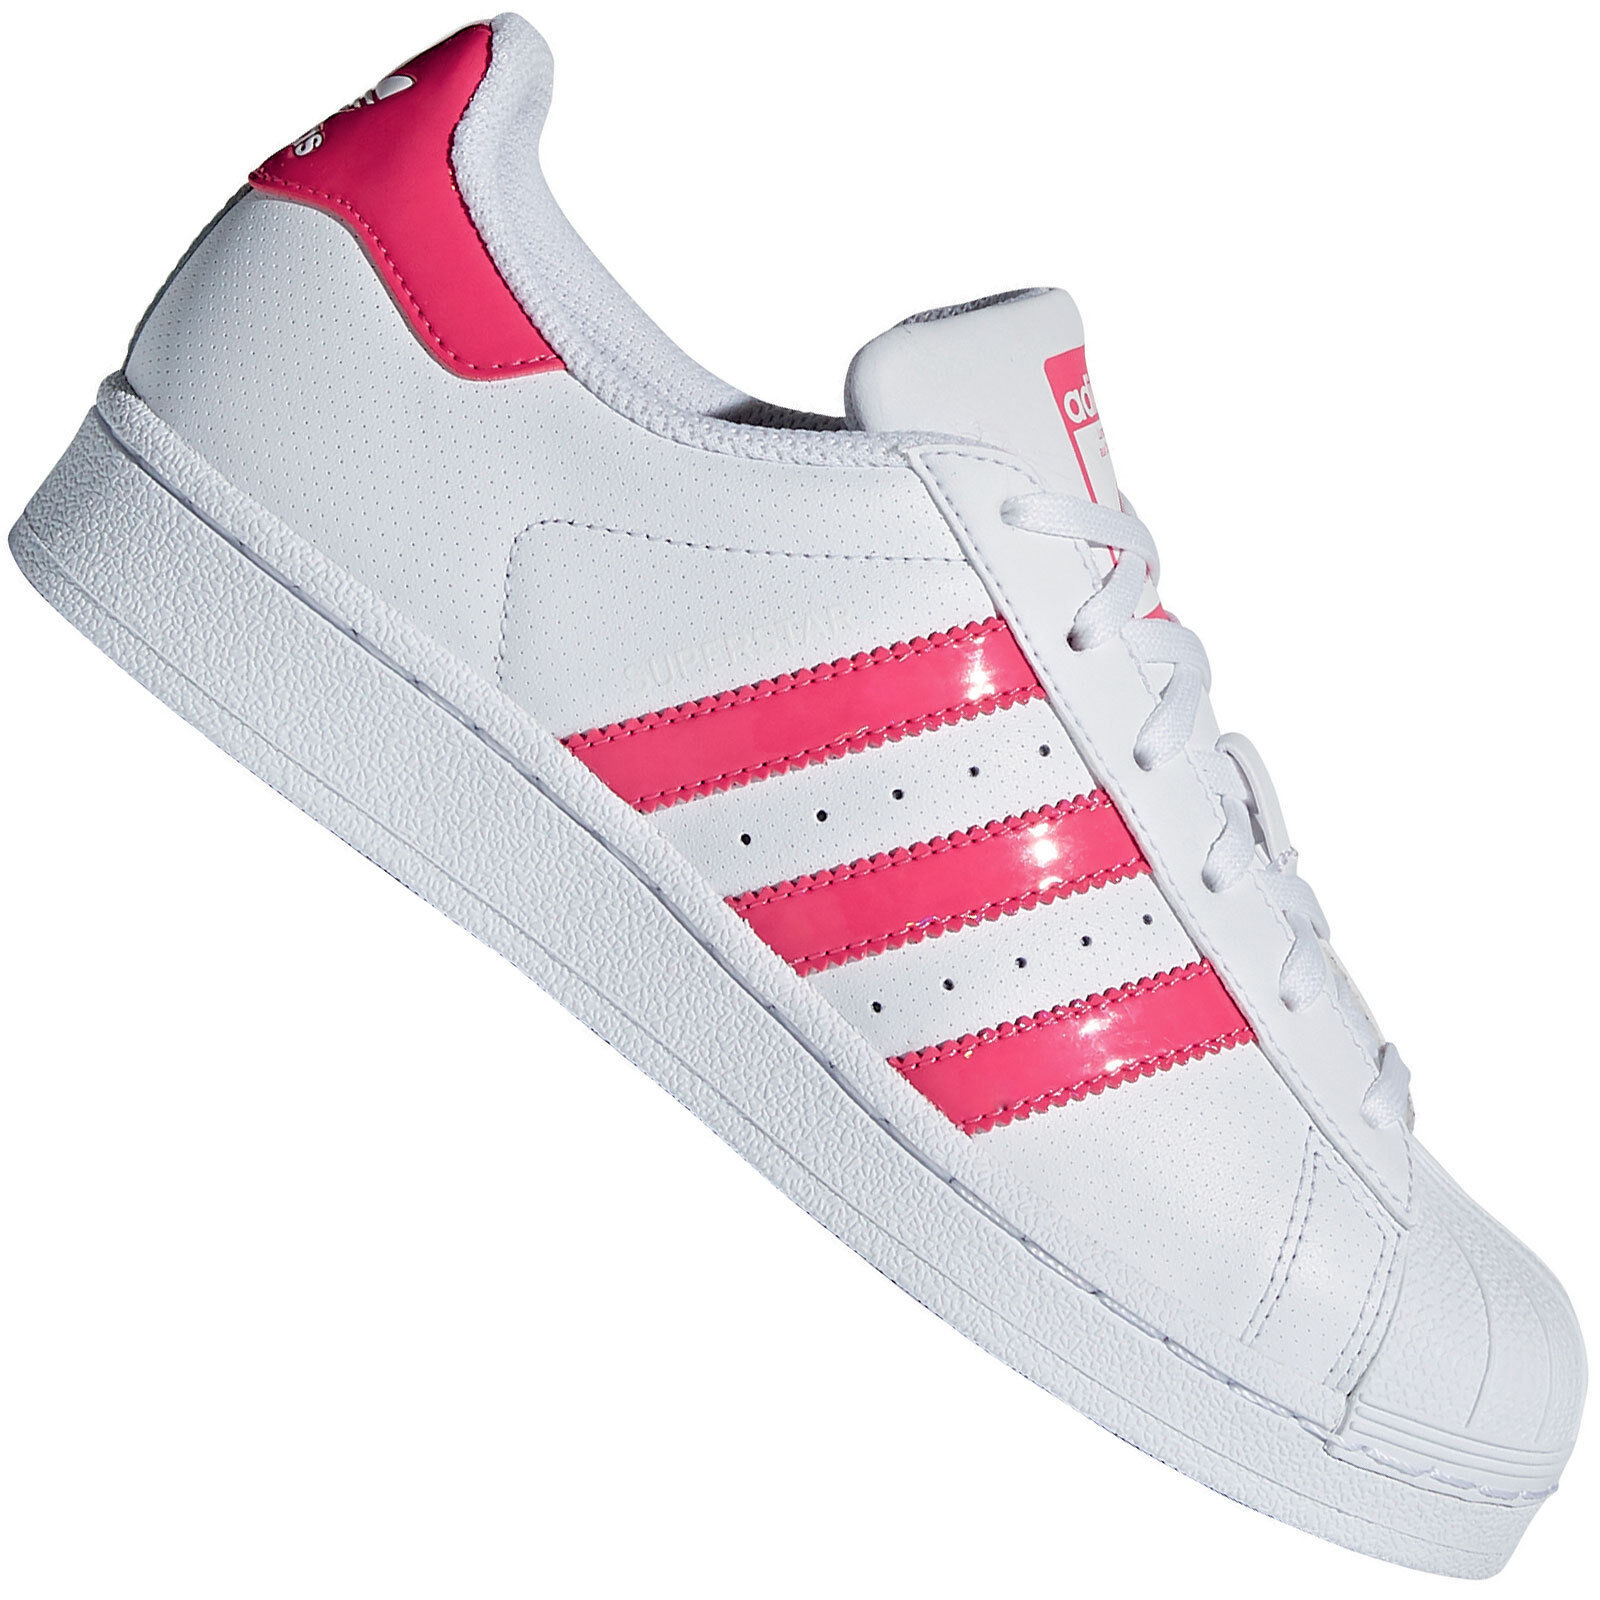 74820820c11b3 adidas Originals Superstar J Damen-Turnschuhe Sneaker Kinder Weiß Pink*